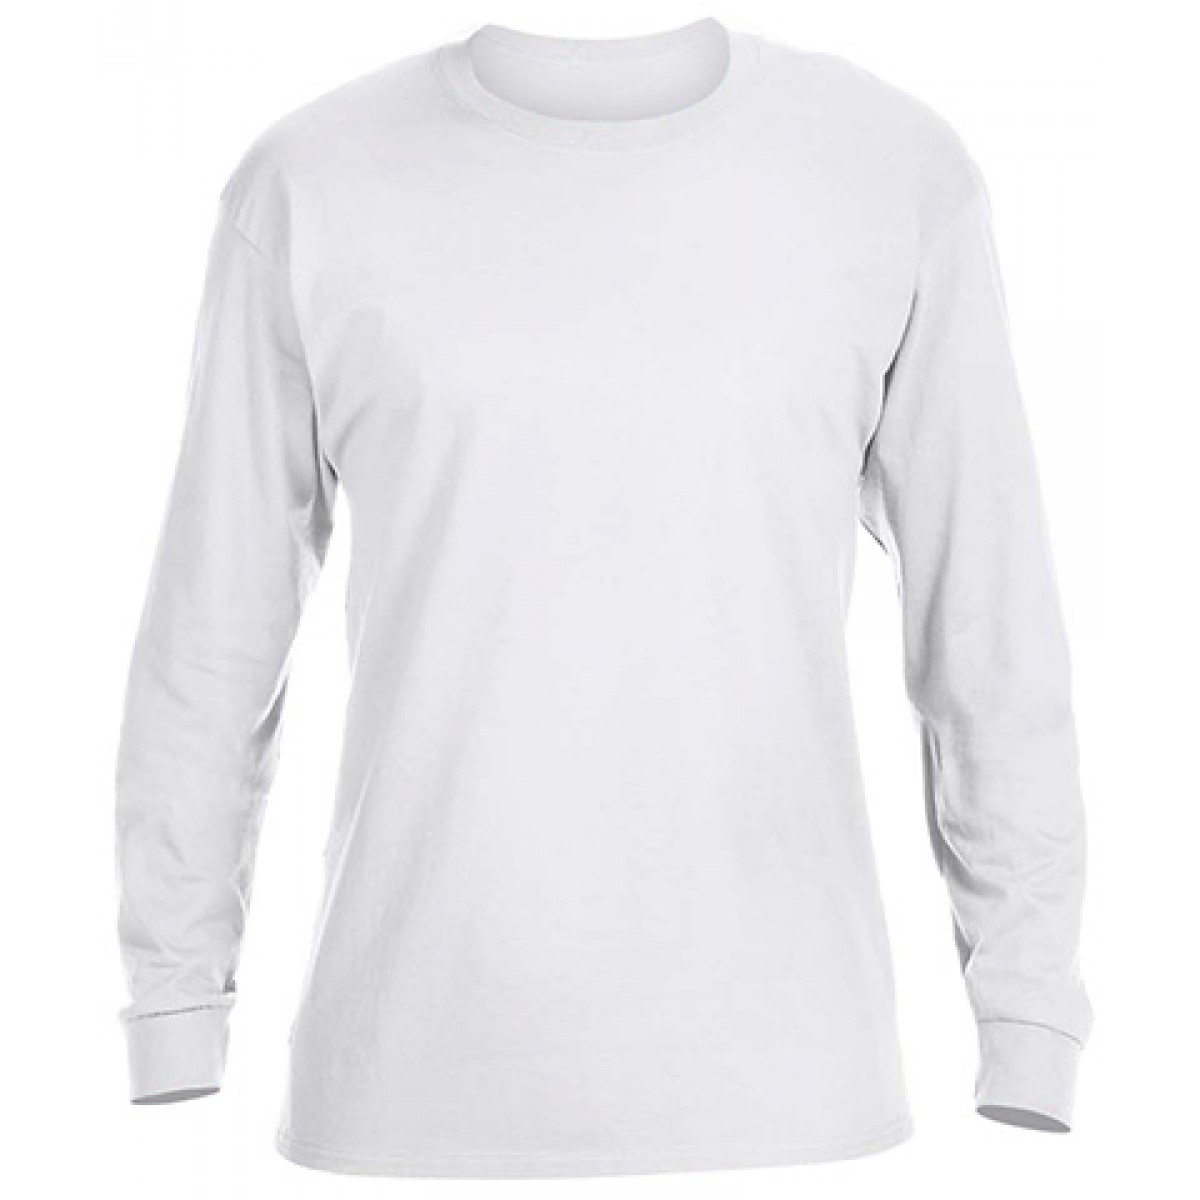 Basic Long Sleeve Crew Neck -White-M